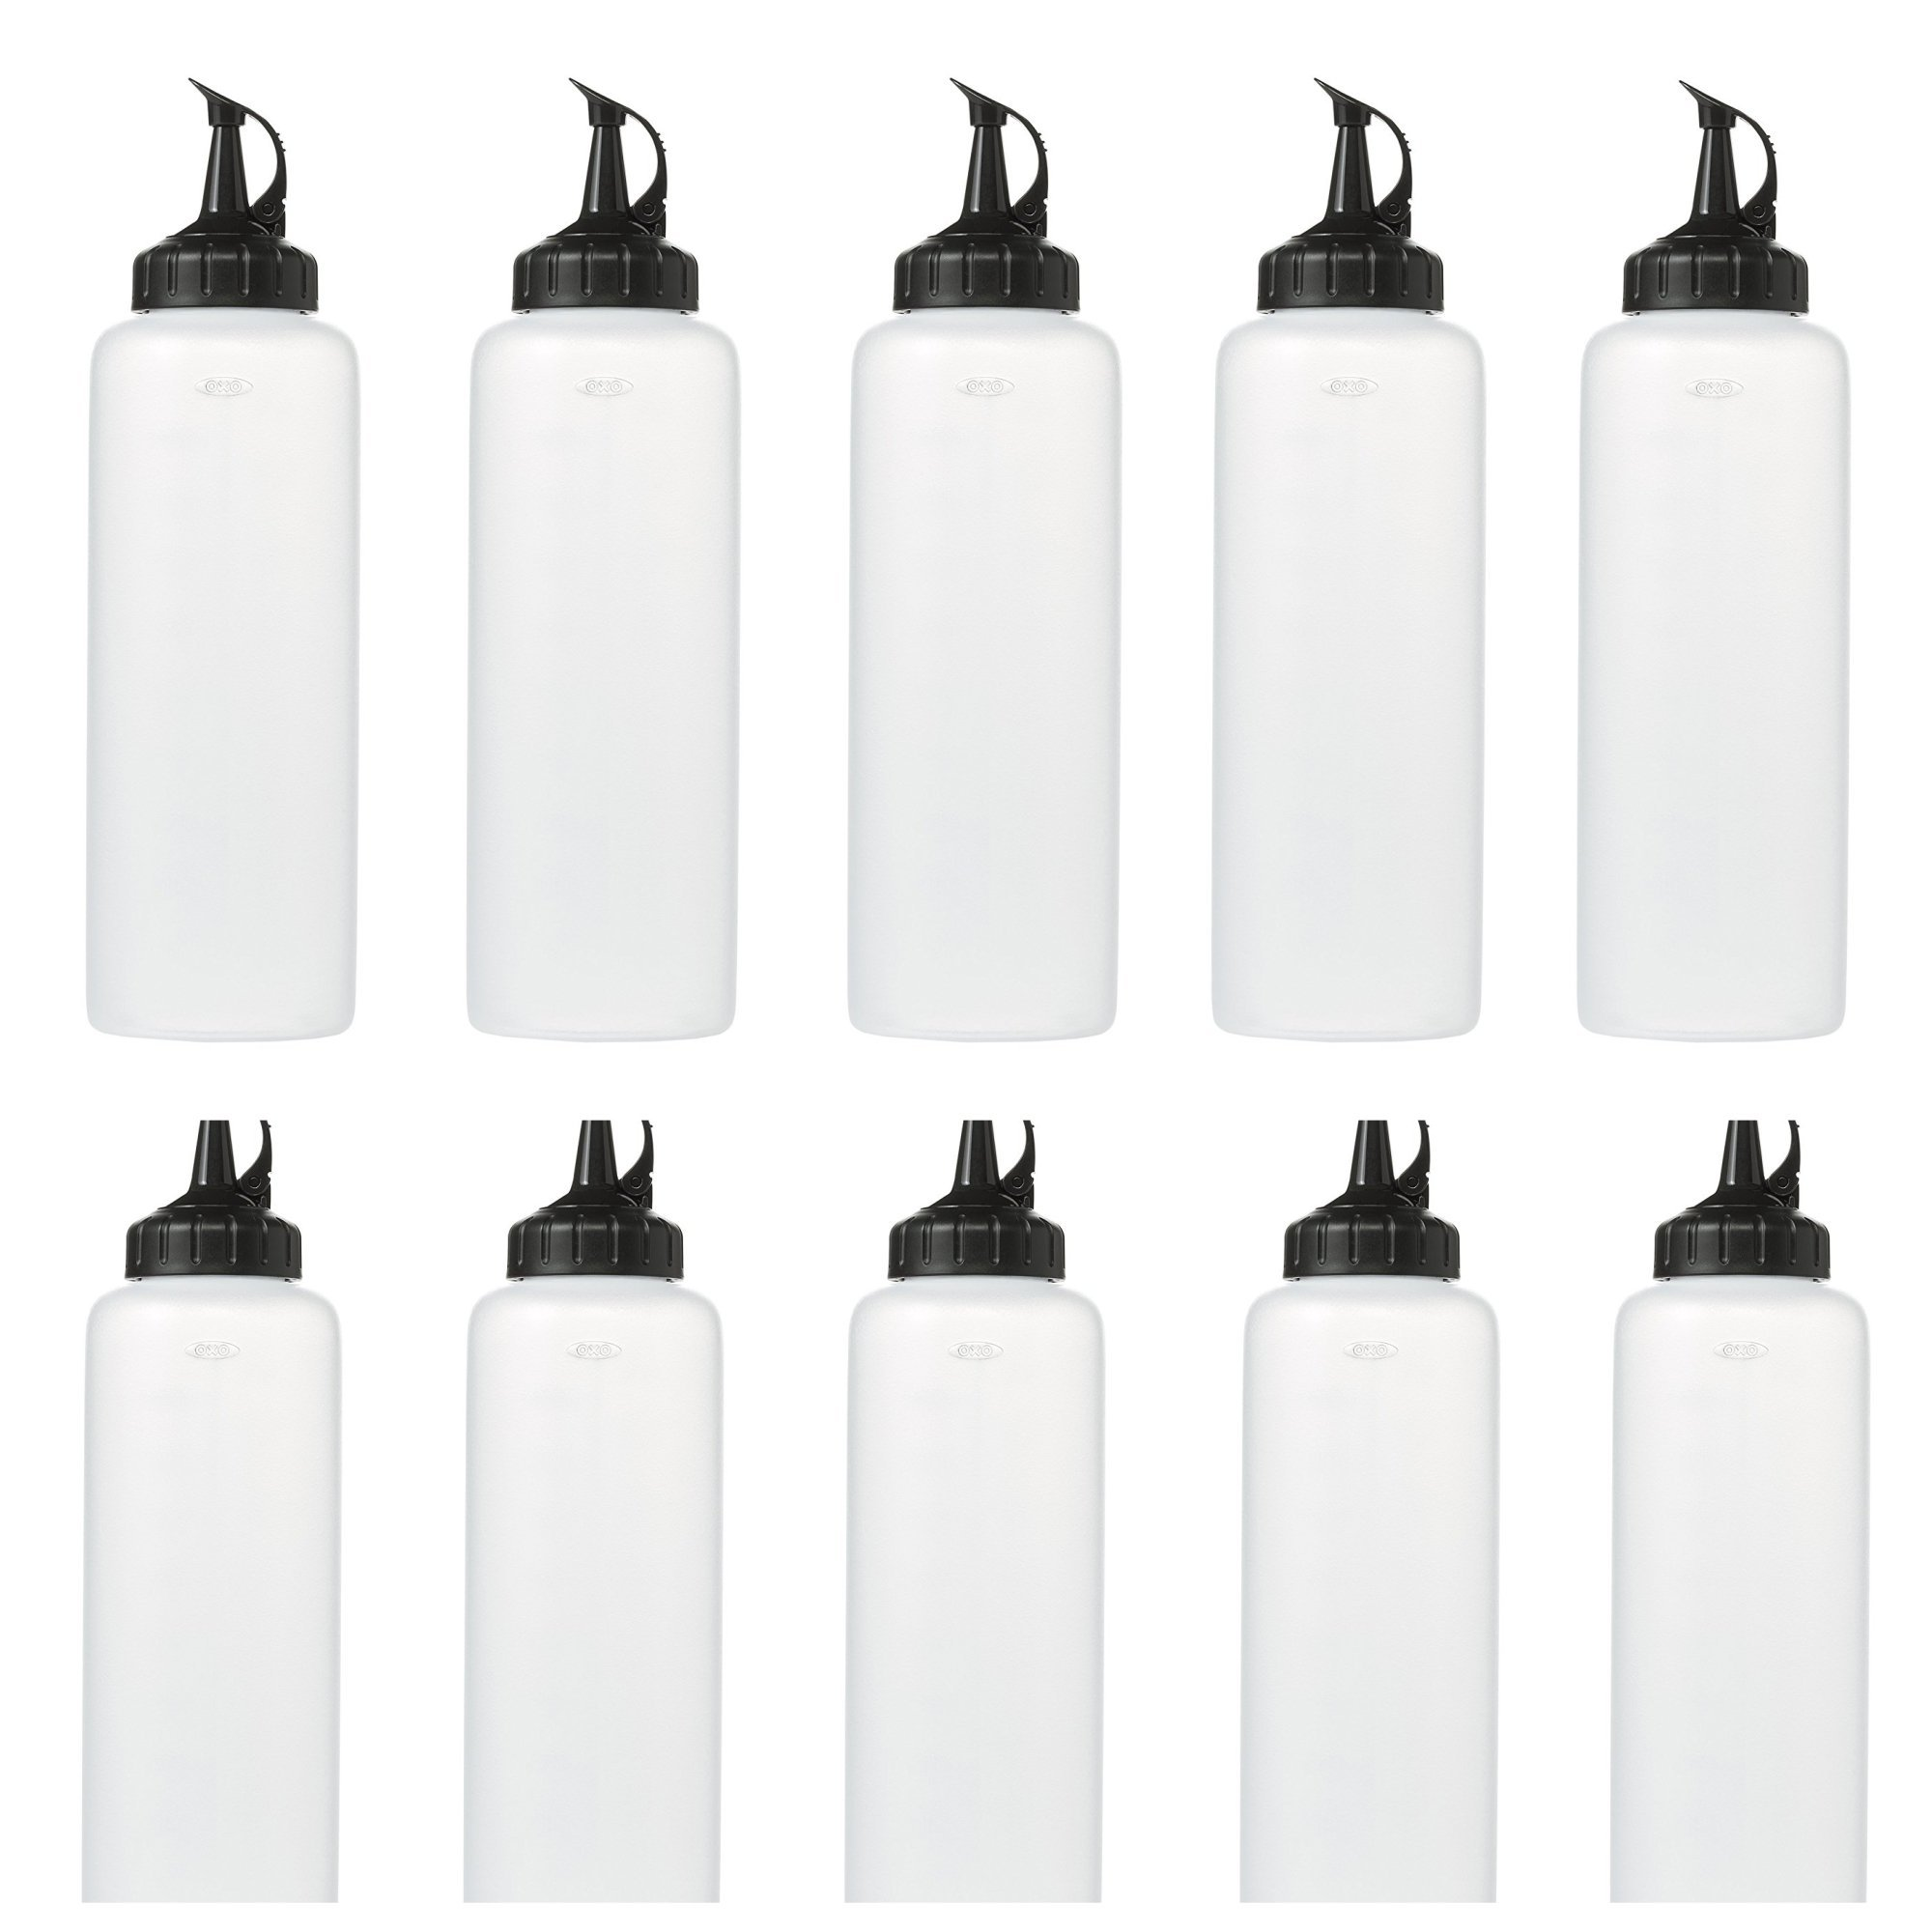 Clear, Plastic Squeeze Bottles With Measurement Marking and Attached Black Caps- Large 16 ounce Size- Perfect for Sauces, Condiments and Dressings- BPA Free- 12 Pack